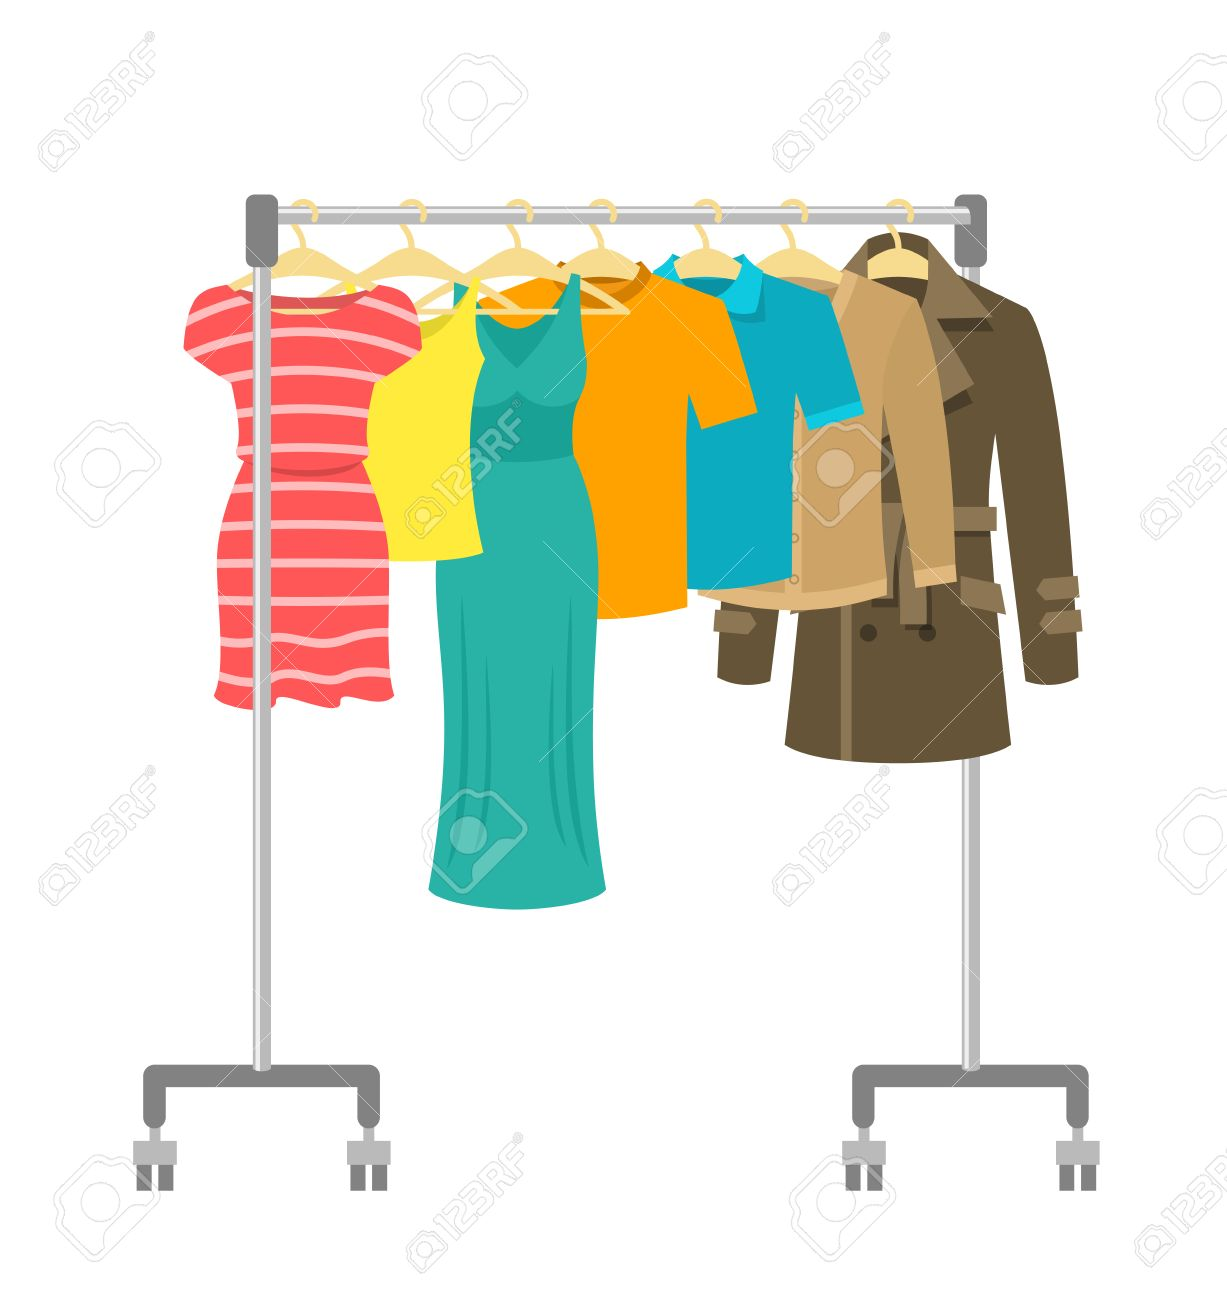 Hanger rack with male and female clothes. Flat style vector illustration. Casual garment hanging on portable rolling metal commercial hanger stand. Everyday outfit sale concept. Fashion collection. - 59194375